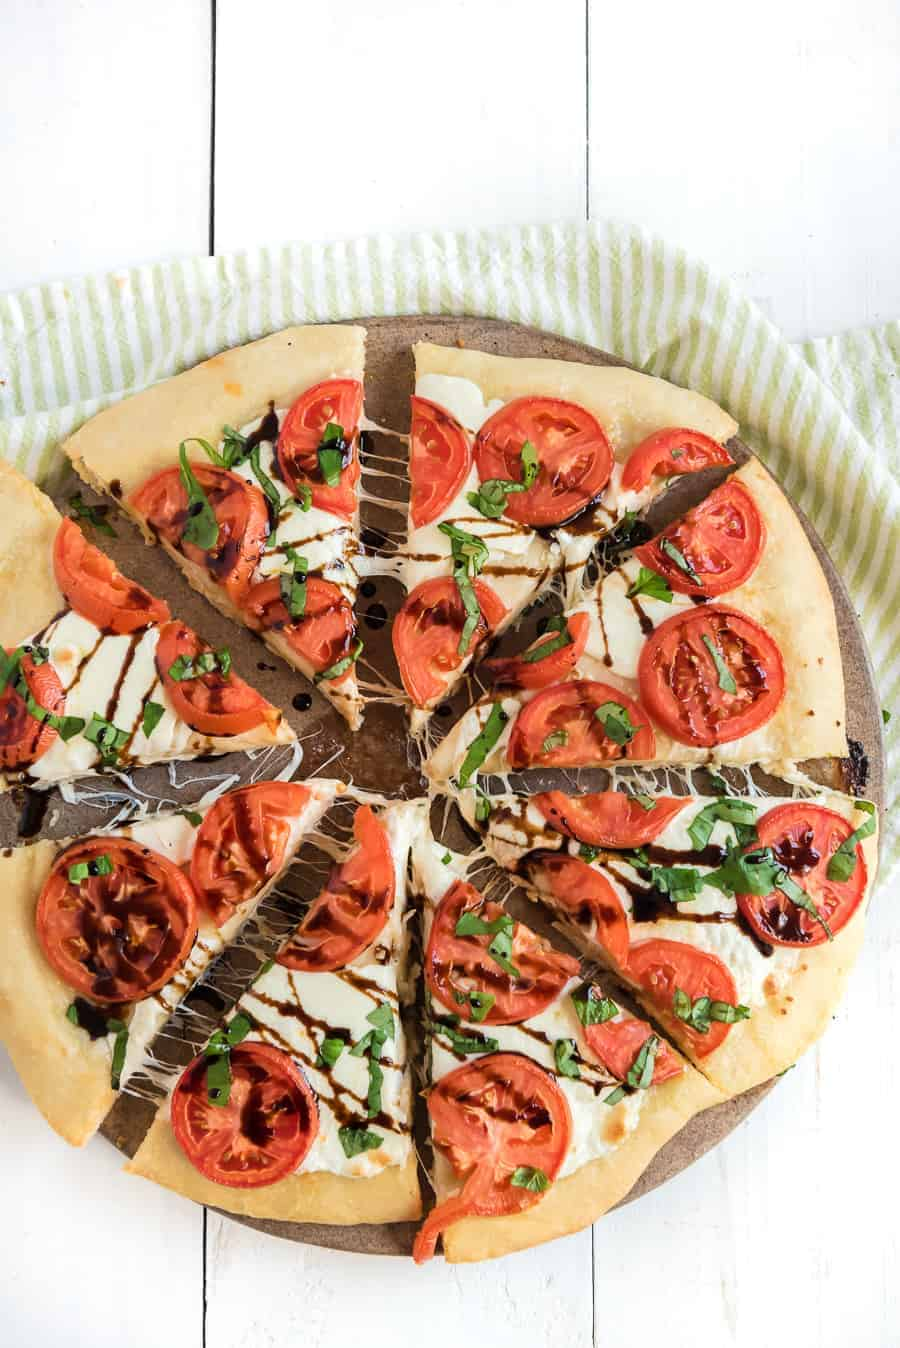 This easy margherita pizza recipe is made of a simple homemade pizza dough with fresh tomato, mozzarella, and basil for a fun and casual meal you can make at home. It's the ideal meal for a busy weeknight or a low-key movie night on the weekend, and it's beyond simple to make from scratch with minimal ingredients. #pizza #margheritapizza #margheritapizzarecipe #pizzarecipe #homemadepizza #homemadepizzadough #pizzadoughrecipe